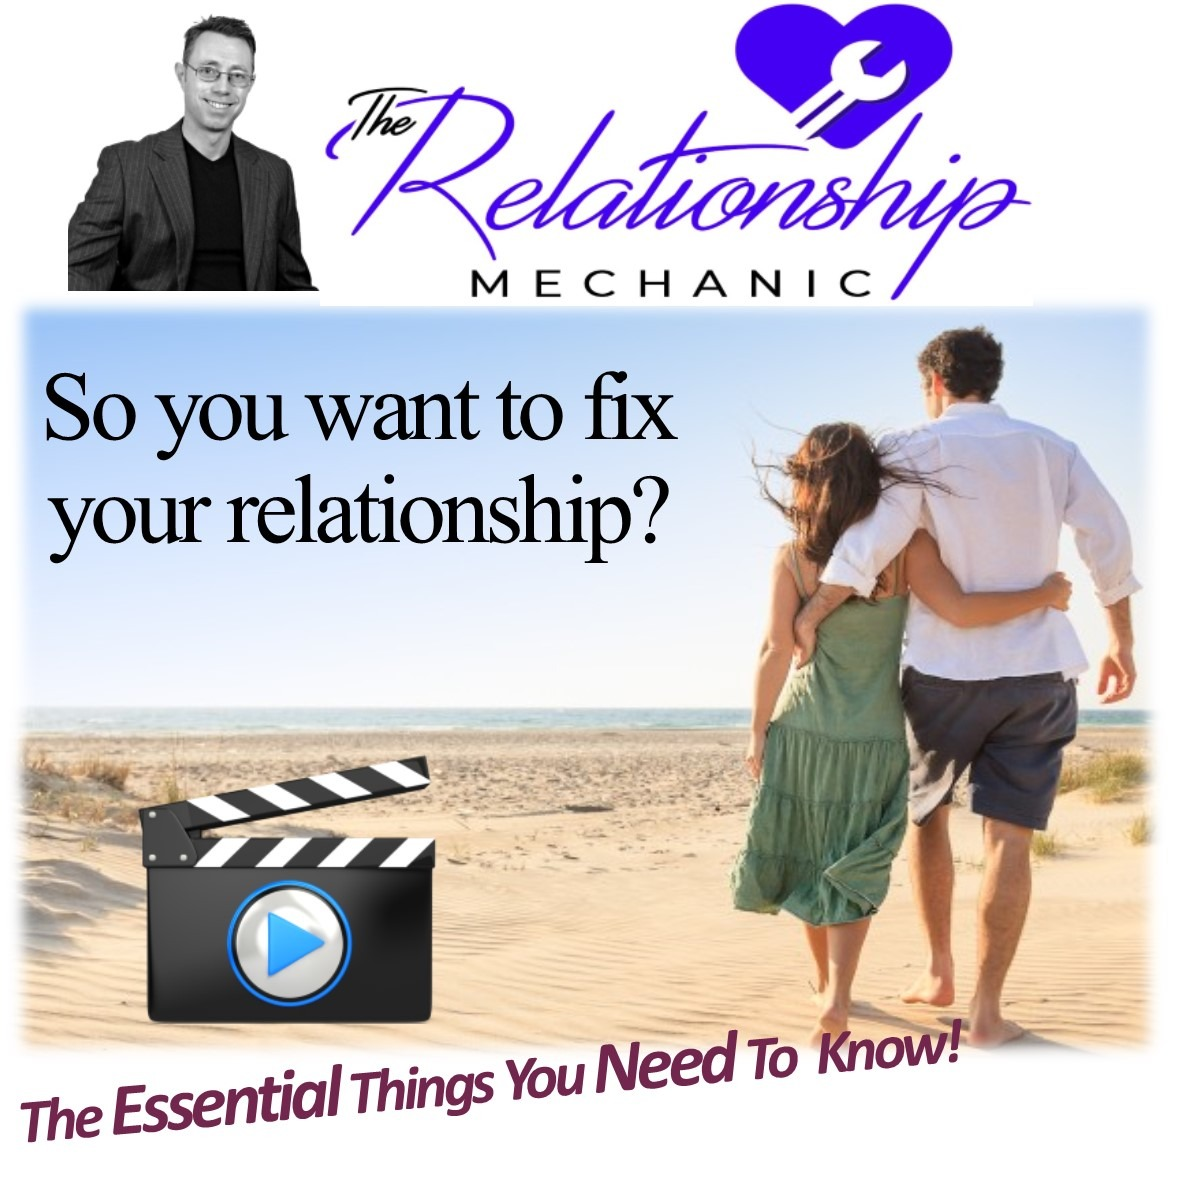 So you want to fix your relationship? Essential.